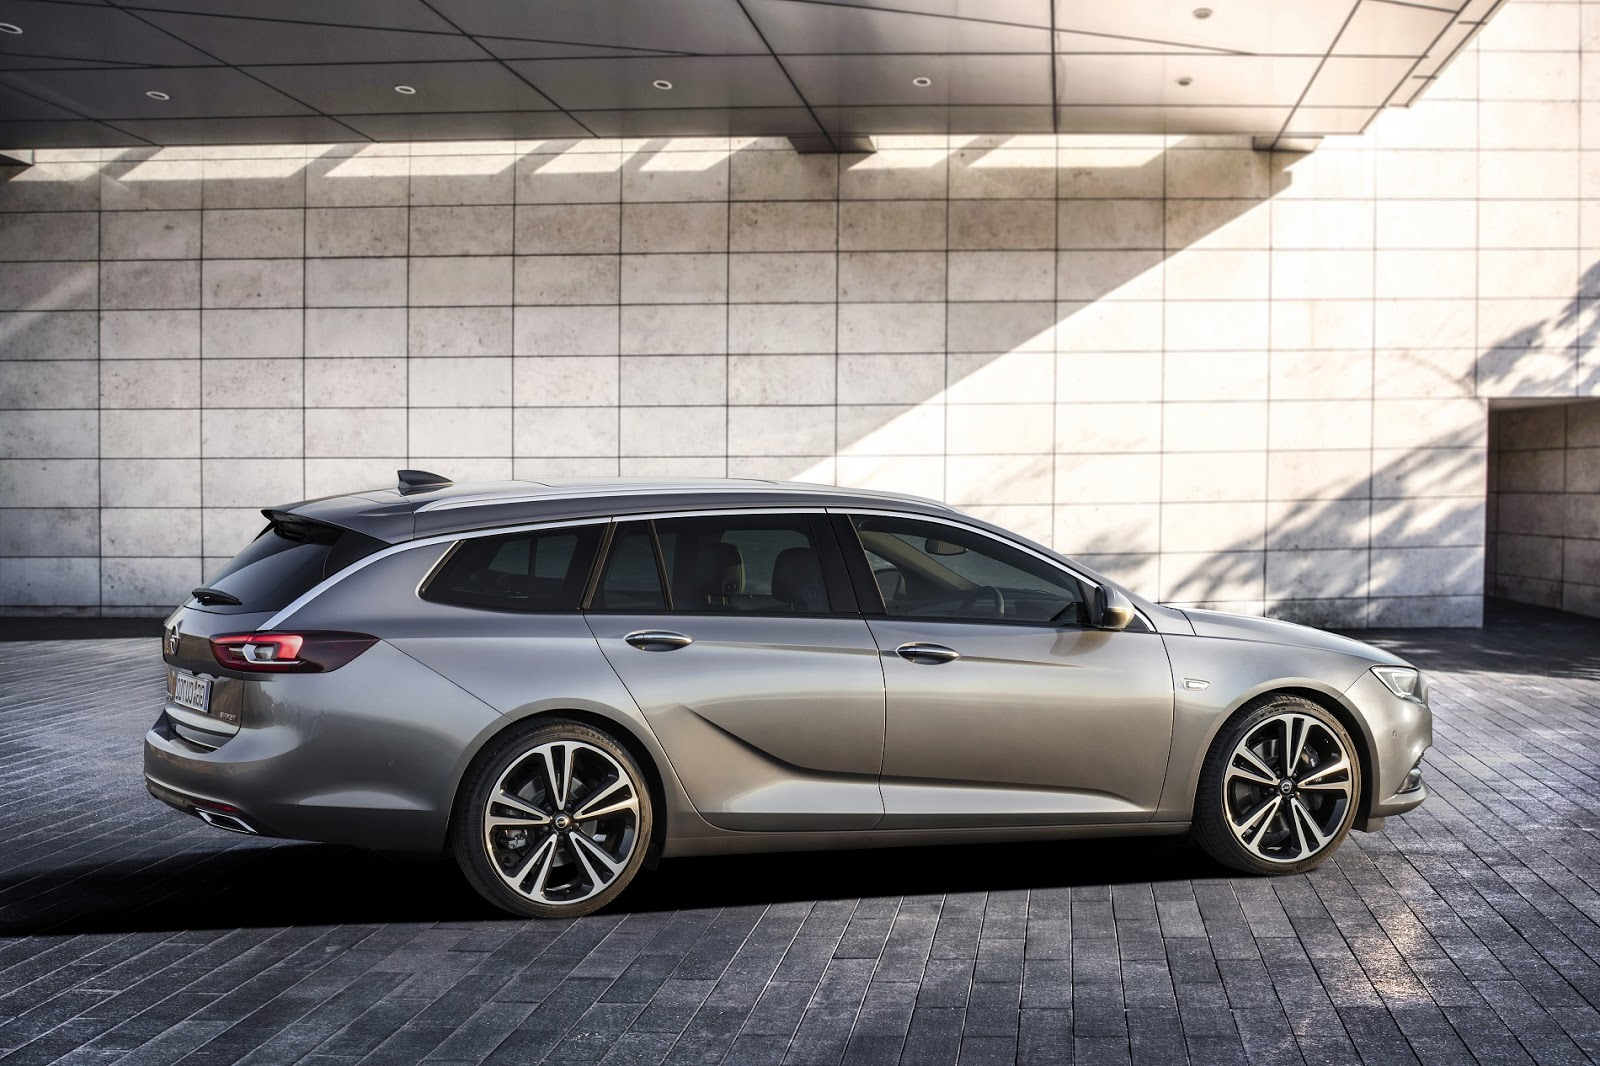 Meet The New Opel Insignia Sports Tourer Turbo Charged 15 Liter 2018 All Is In Extremely Good Shape It Follows Sporty Example Set By A Large Coup Uncompromisingly Spacious And